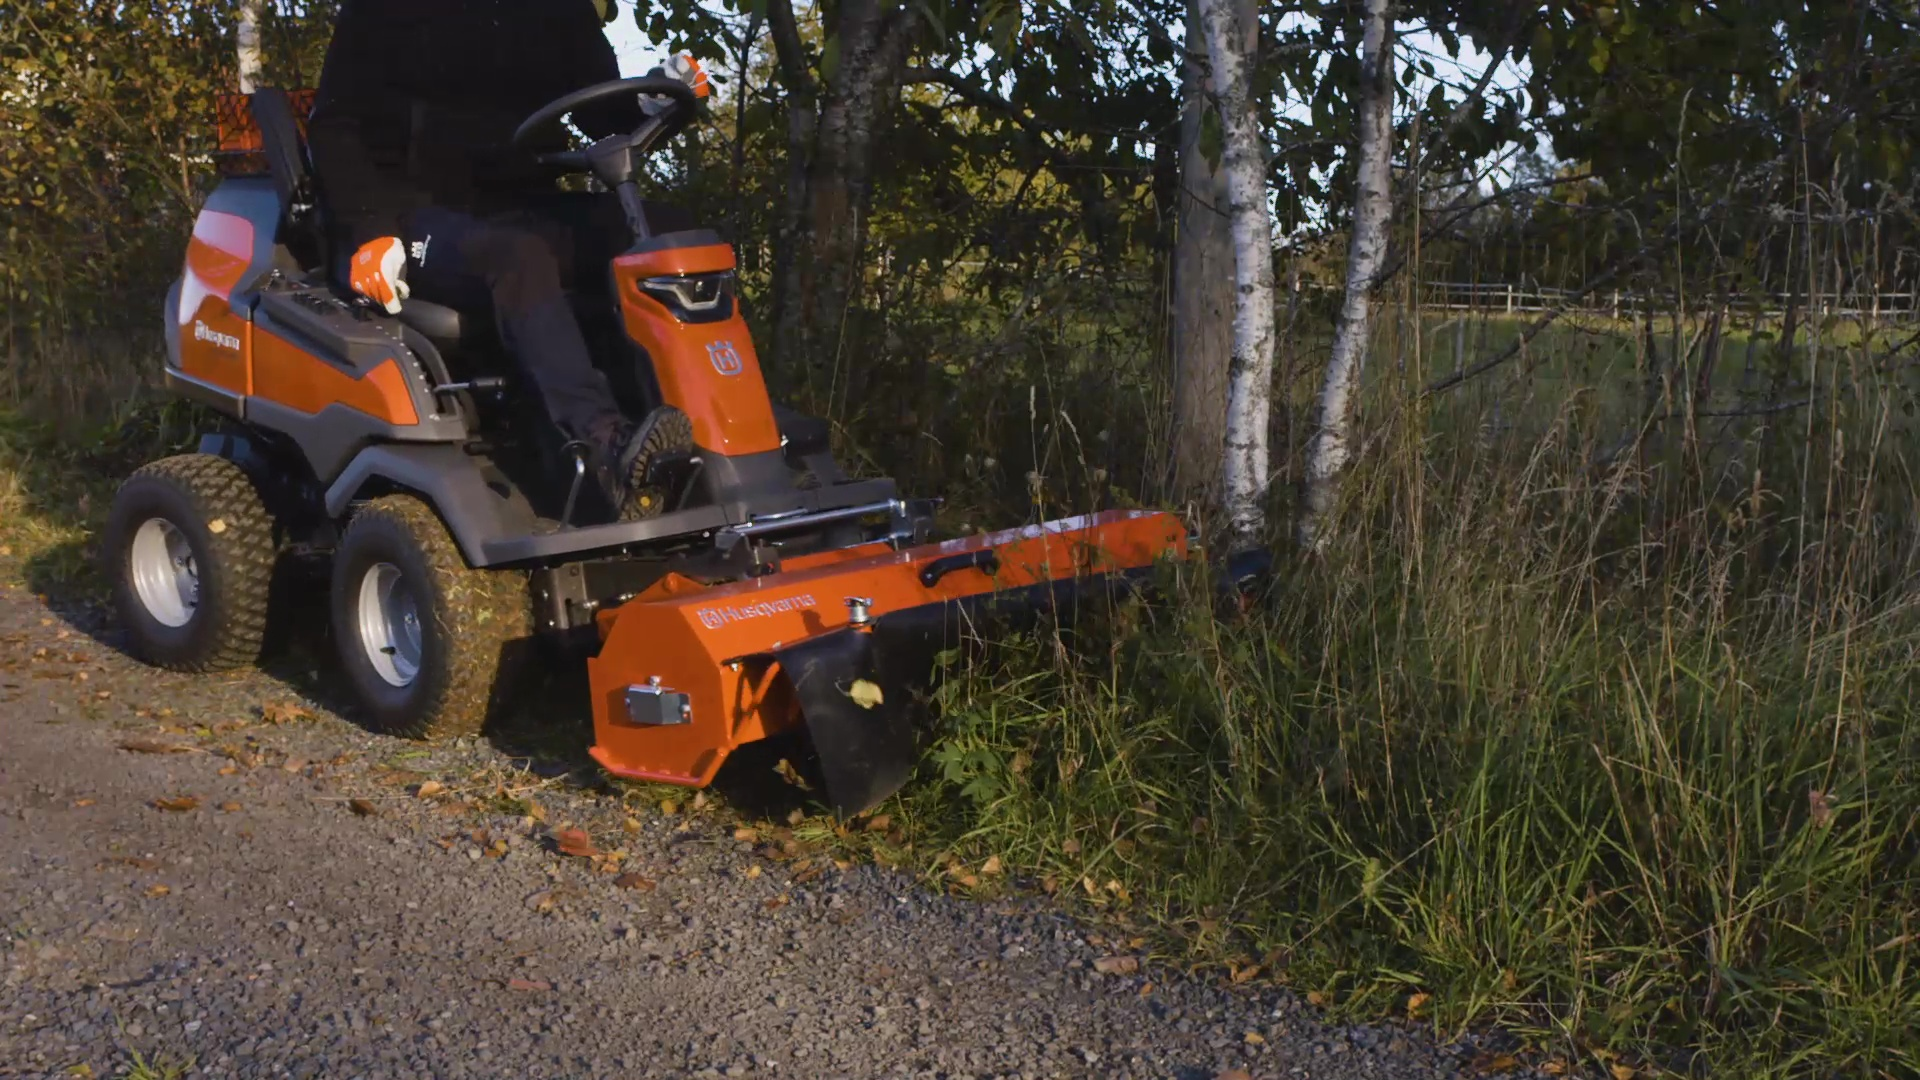 How to attach and remove a flail mower (R 419TsX AWD/R 420TsX AWD)